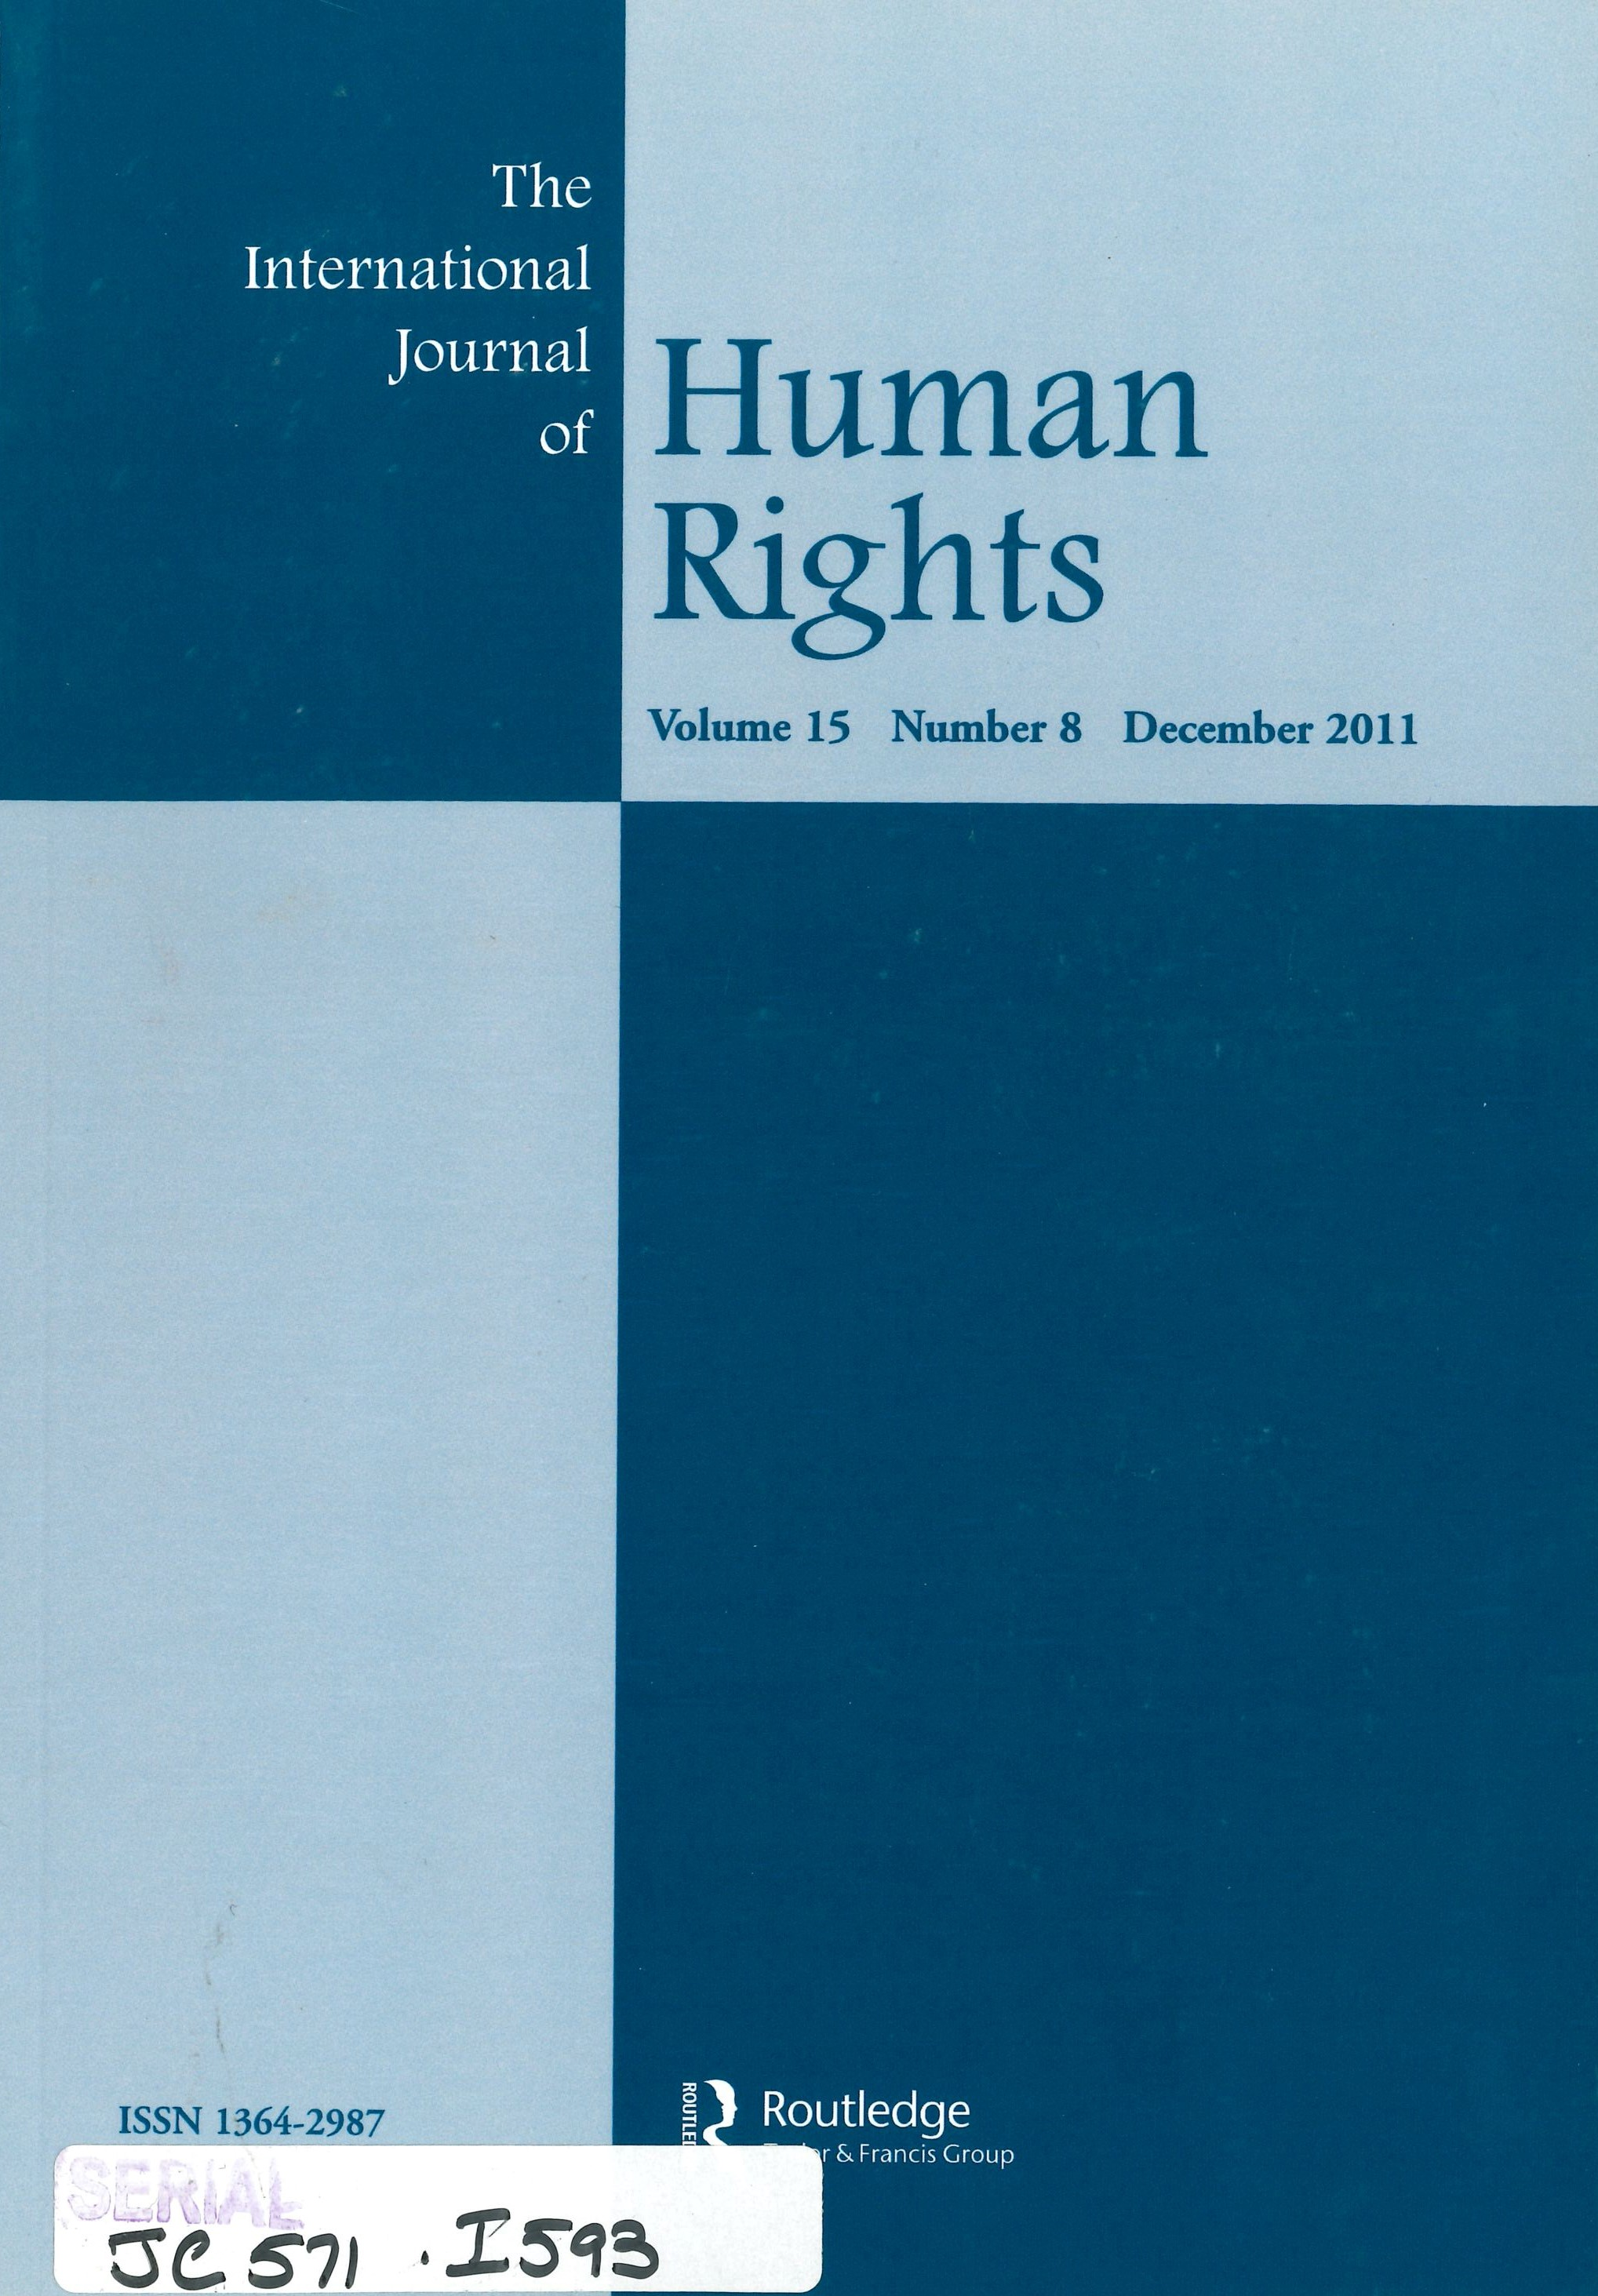 The international journal of human rights.